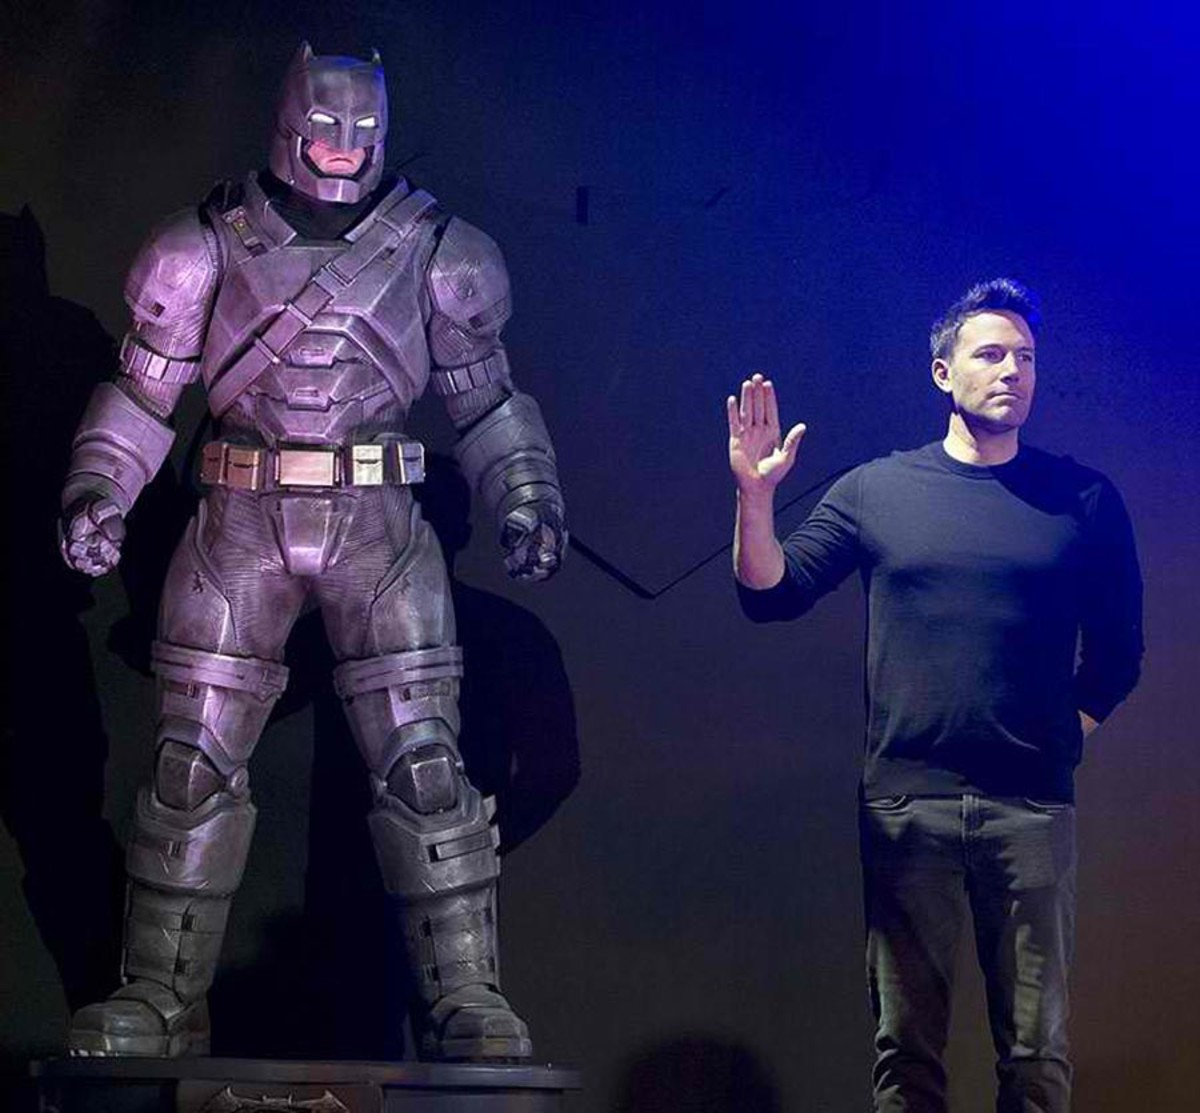 A comic book fan himself, Affleck's turn as the Dark Knight made him more popular than ever.